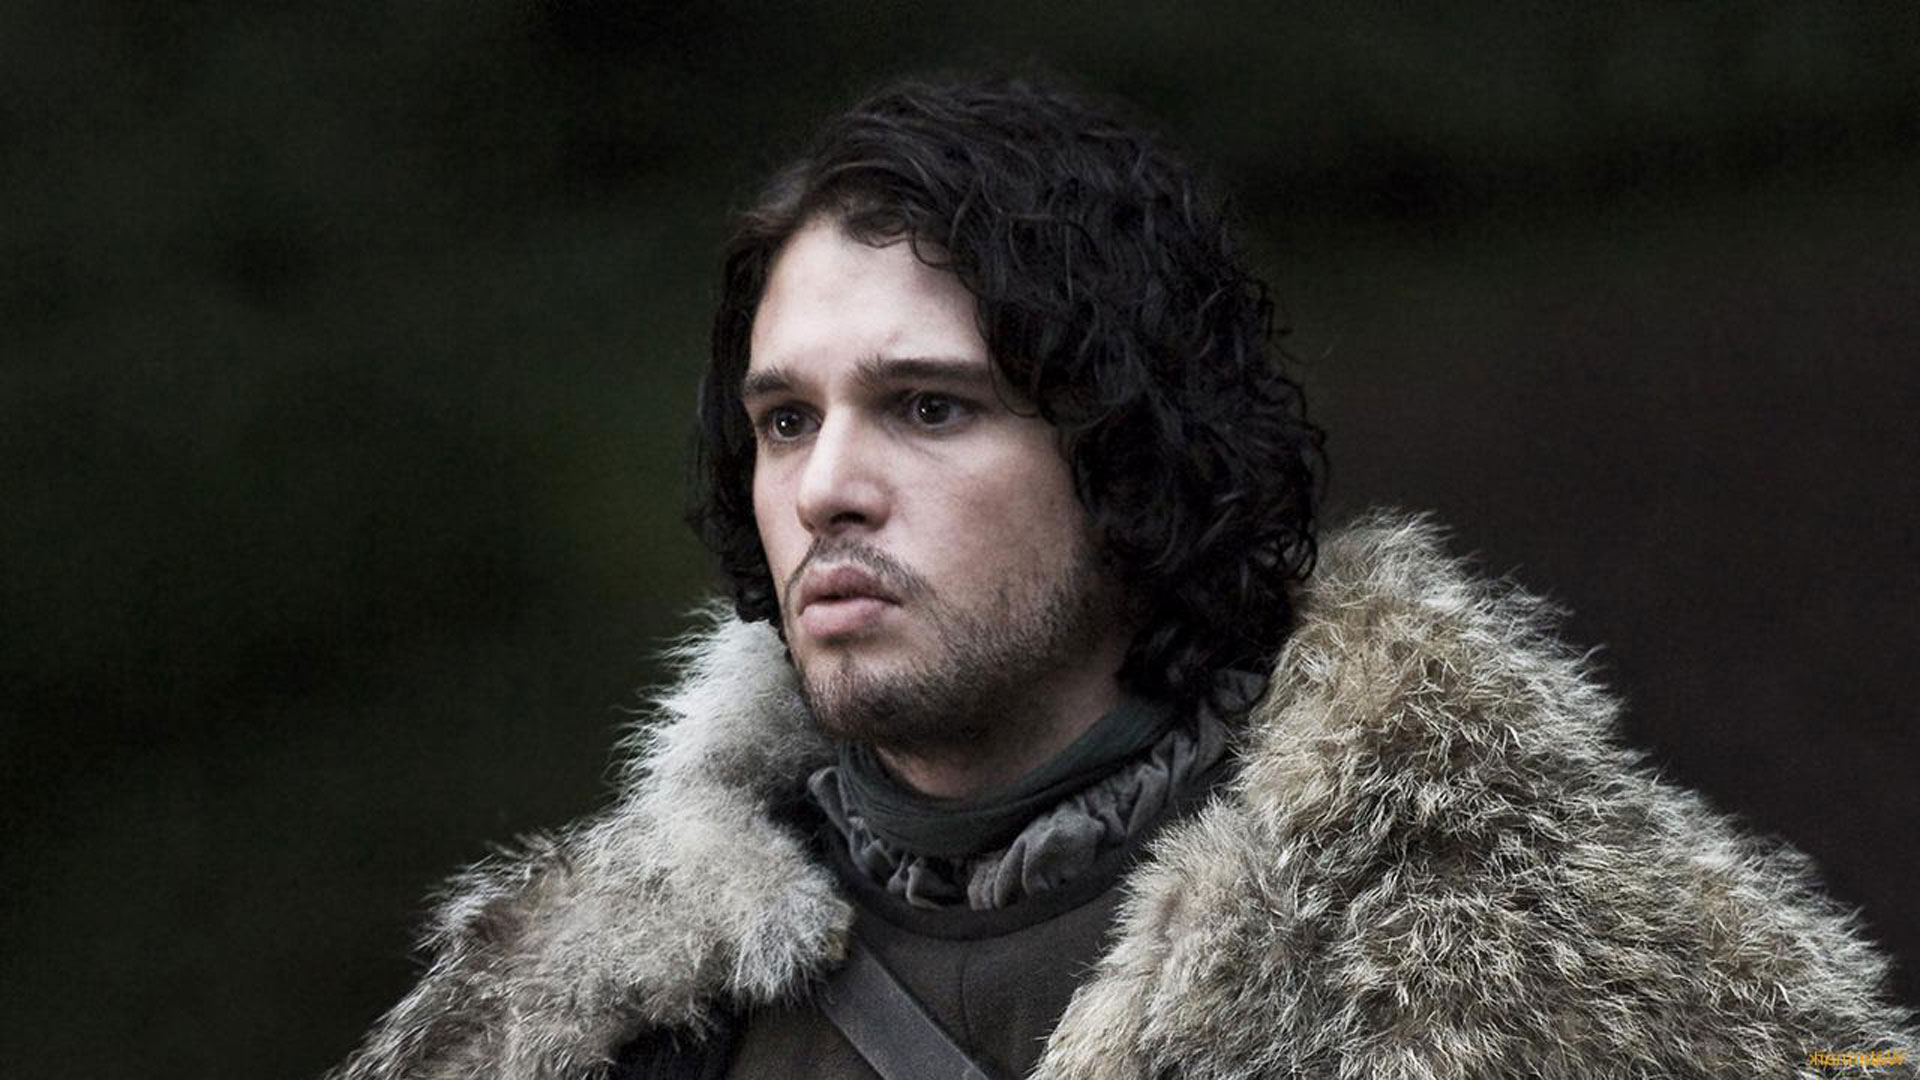 jon_snow_hd_wallpapers_desktop_windows_8.1